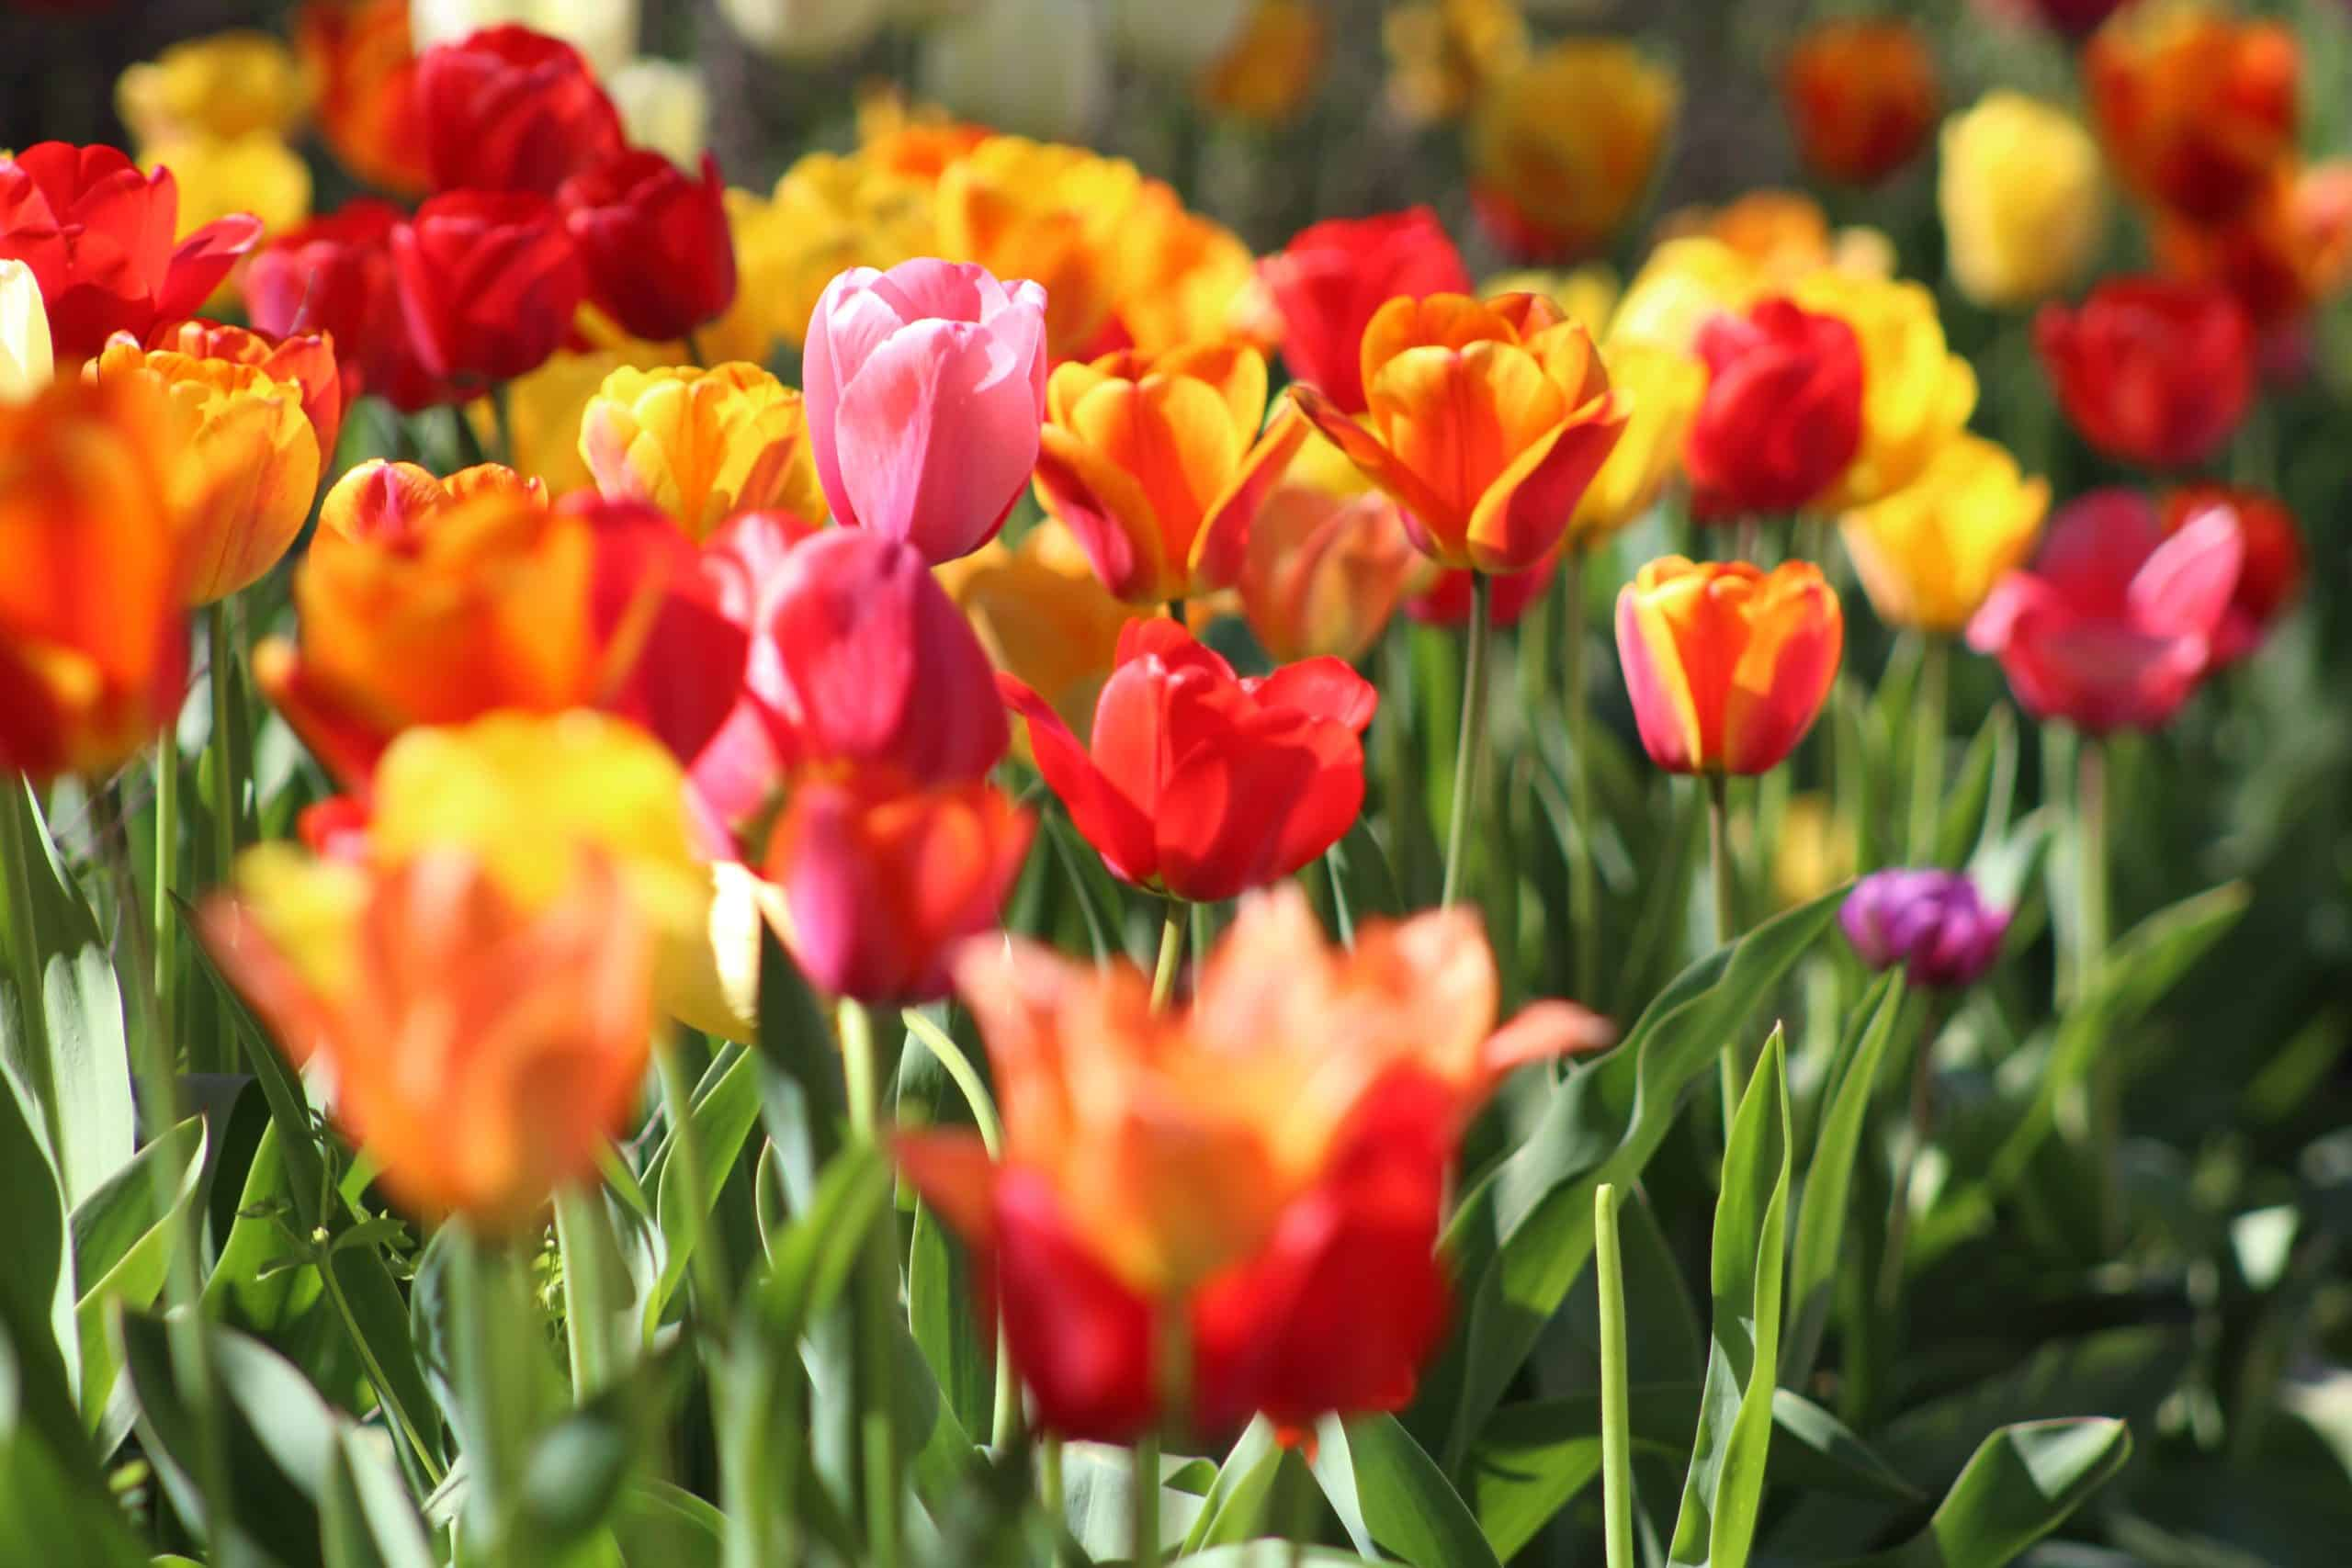 Planning For Your Gardening Project - Follow These Tips